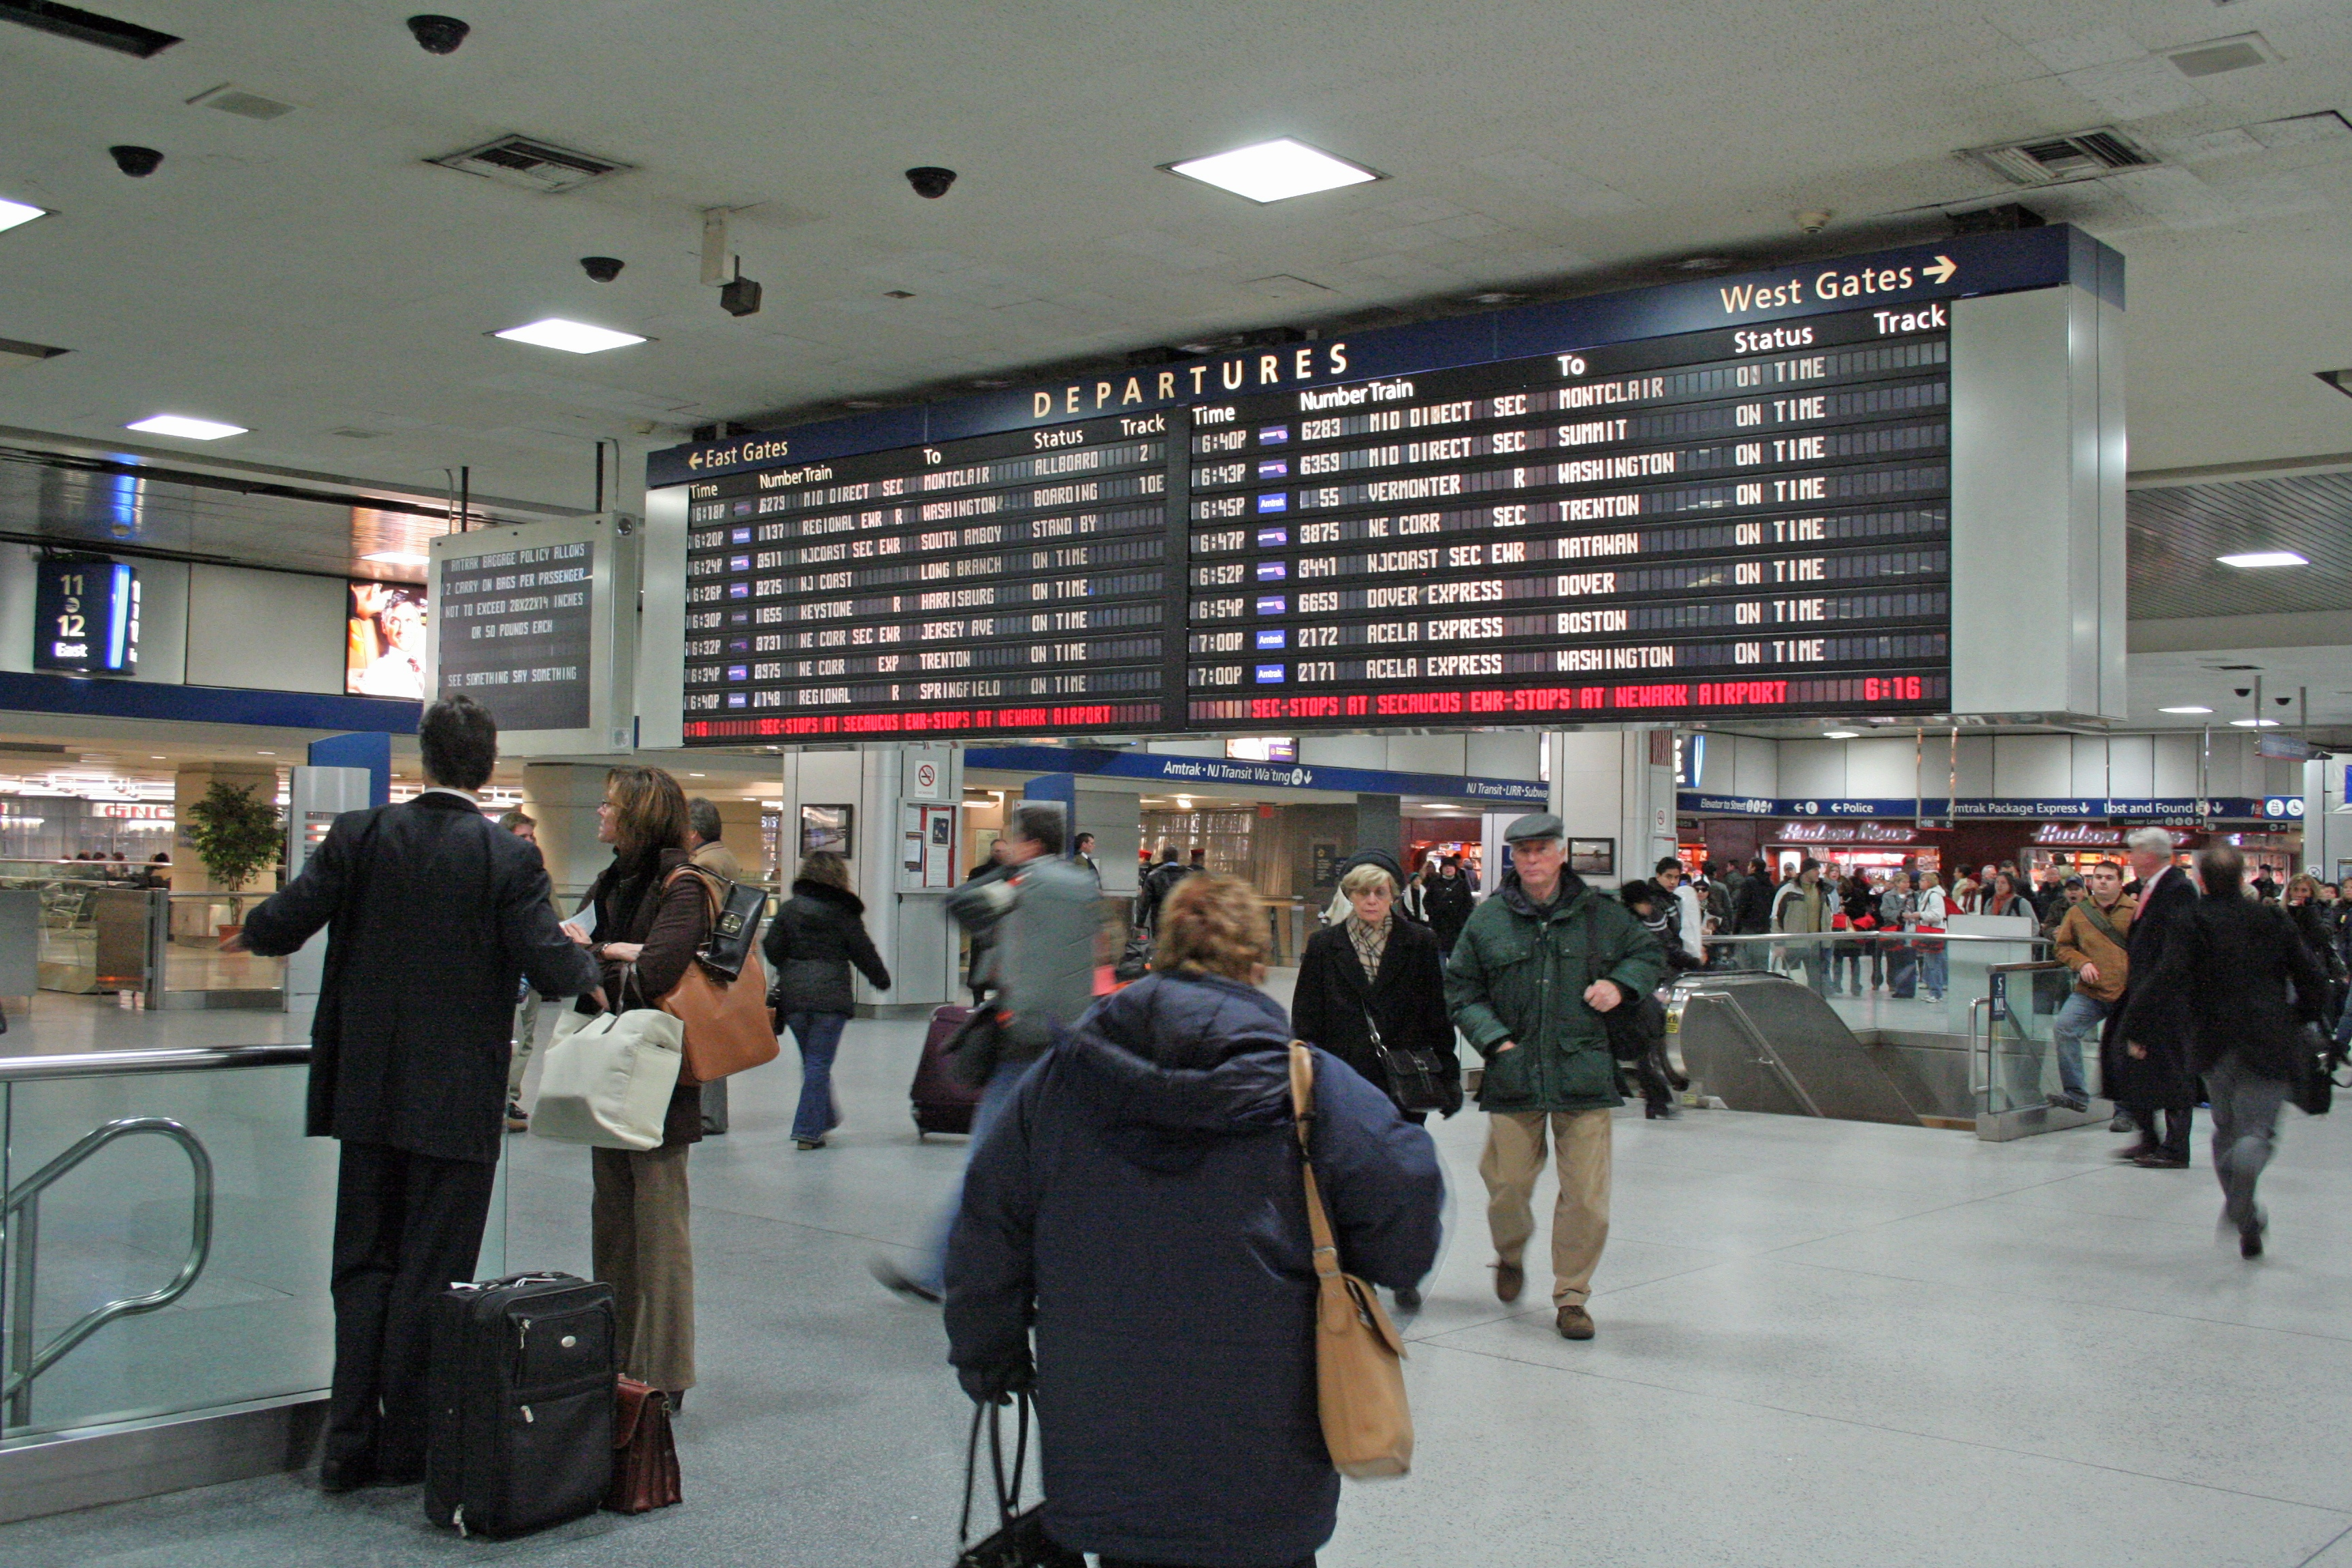 Amtrak phone number penn station - Cuomo Looks To Establish Control Over Penn Station New York Amsterdam News The New Black View